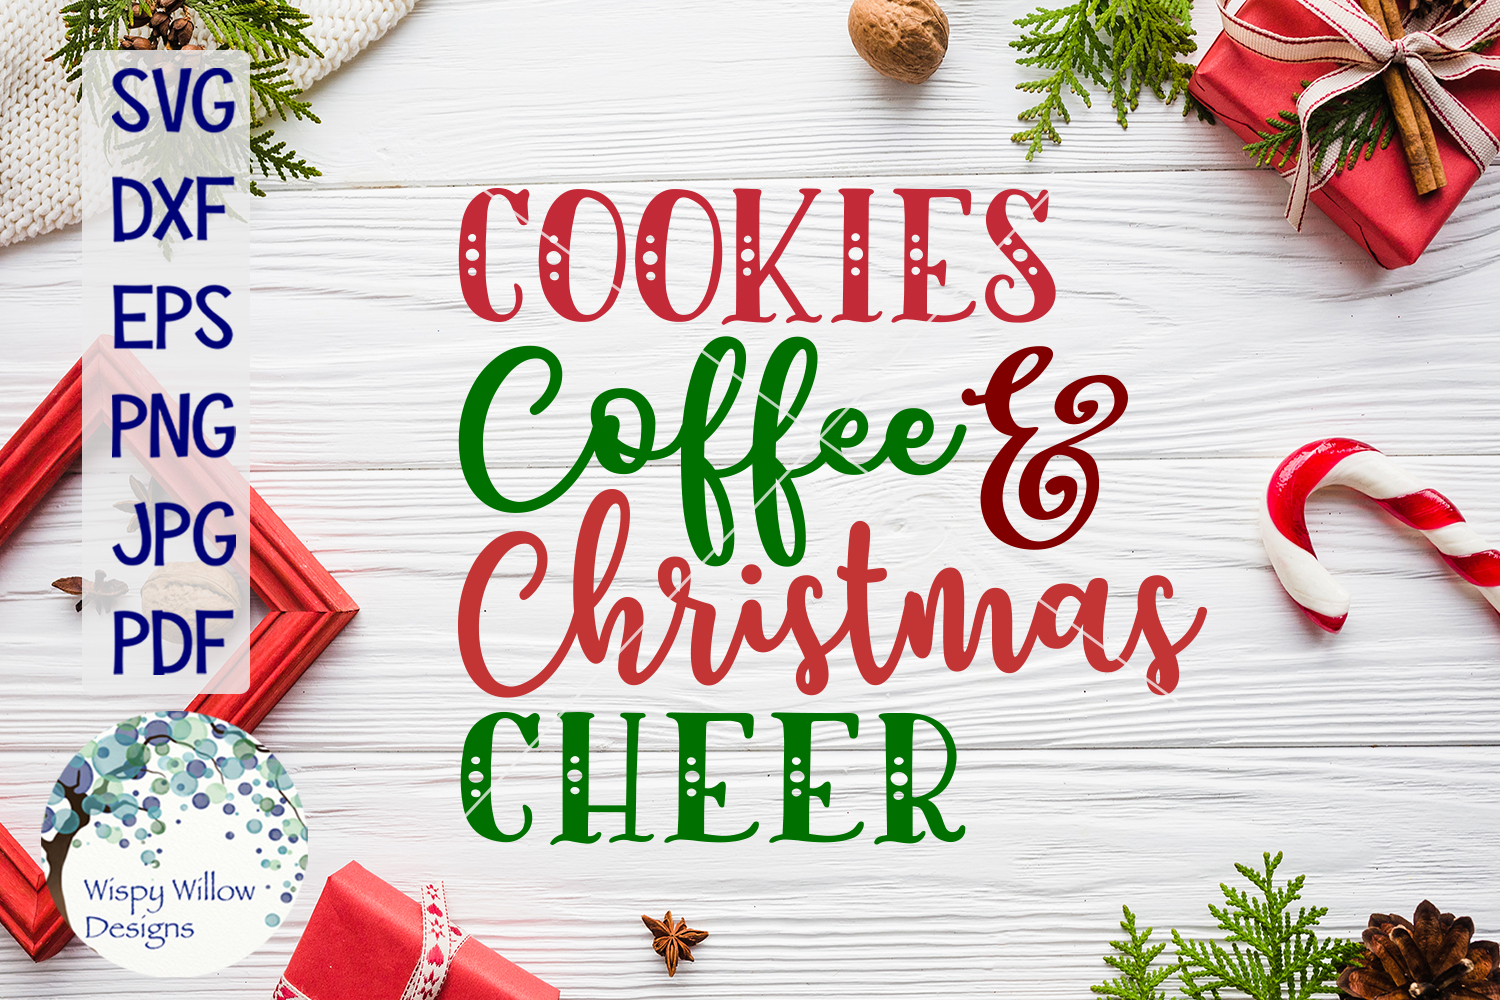 Cookies Coffee and Christmas Cheer SVG Cut File example image 1